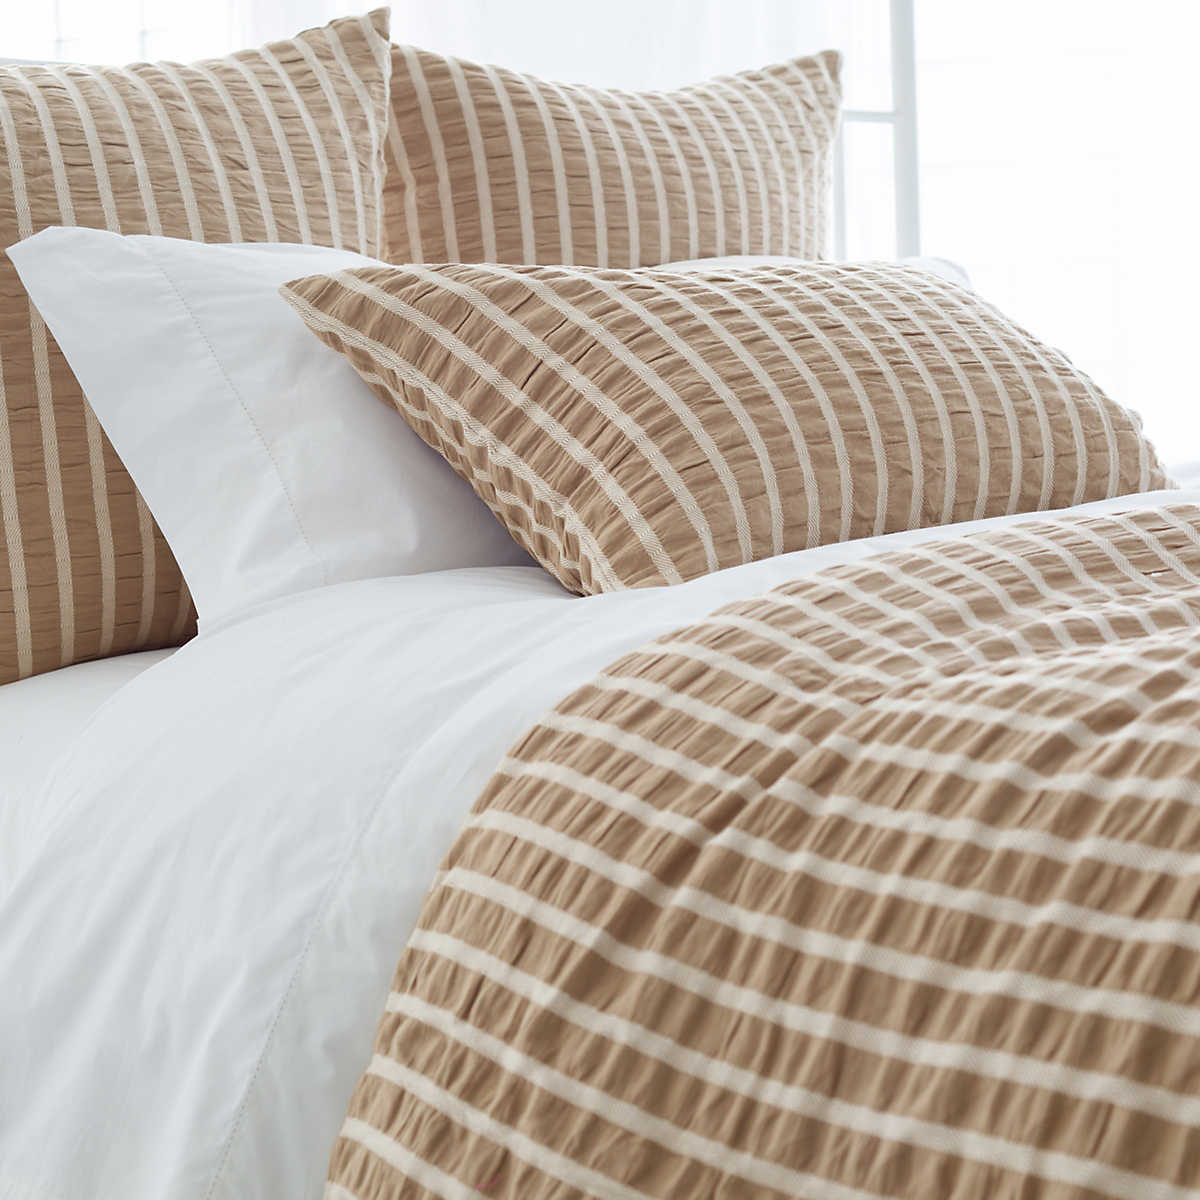 color beige cover washed bedding item getsubject cotton sheet solid hotel set fitted duvet aeproduct